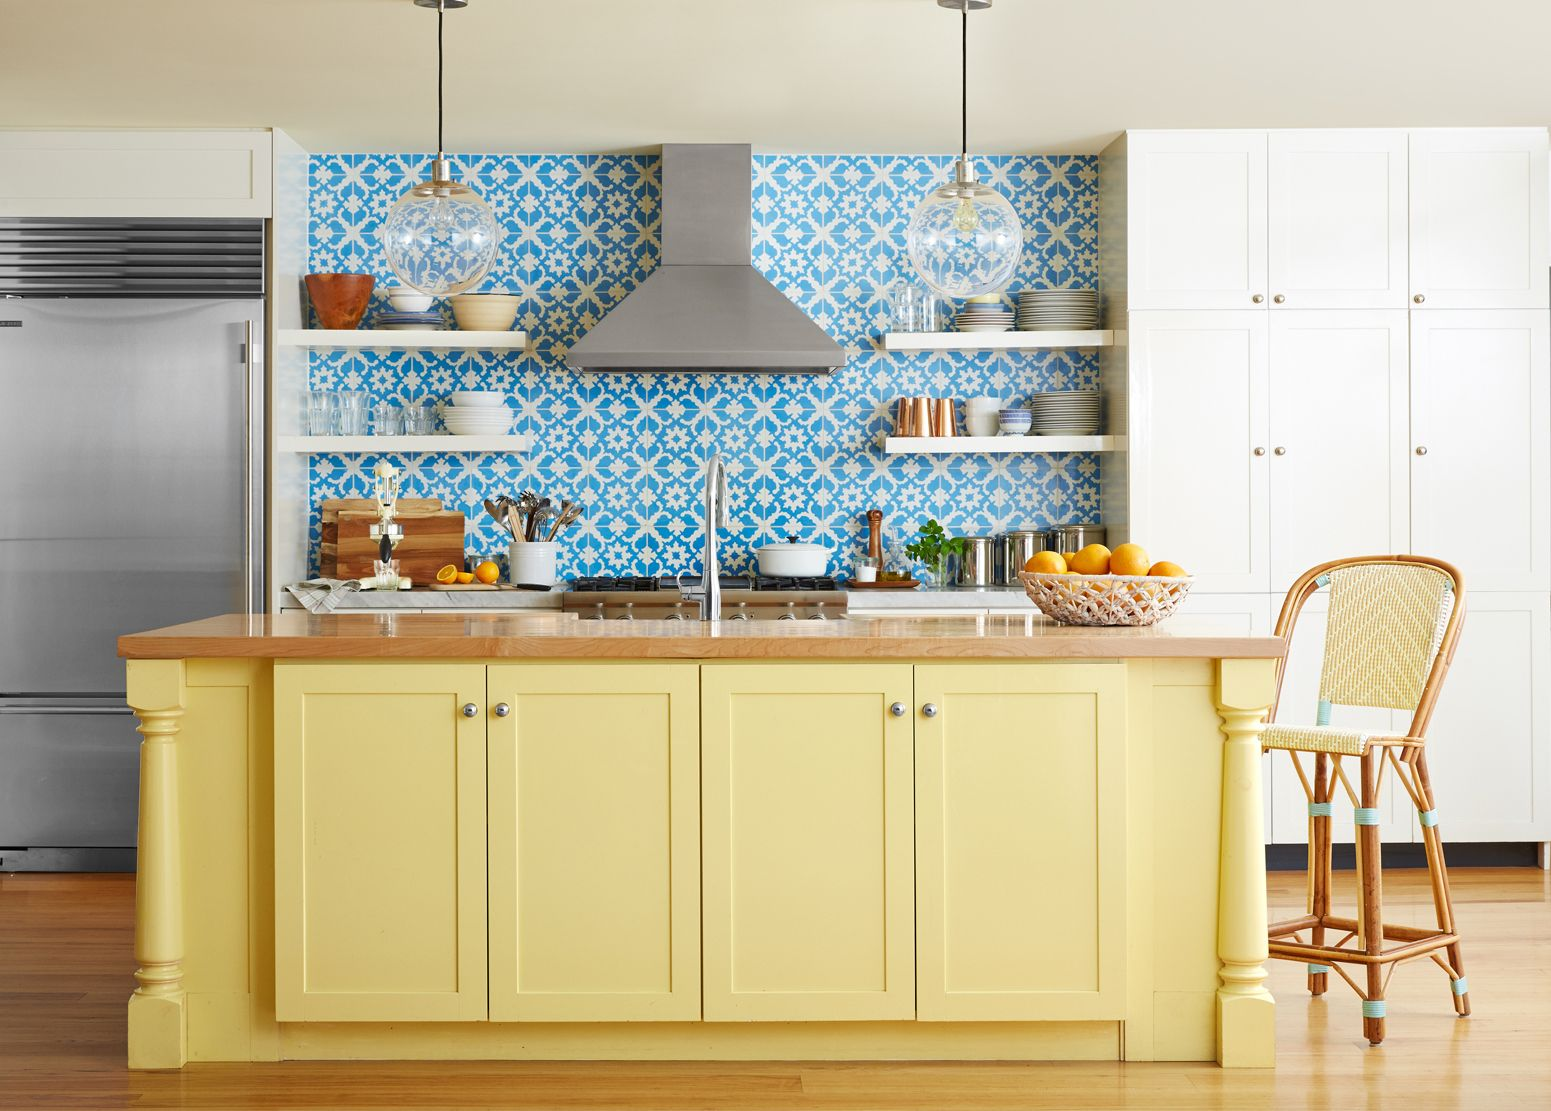 8 Ways to Add Bright Summer Style to Your Kitchen - Yellow Kitchen ...